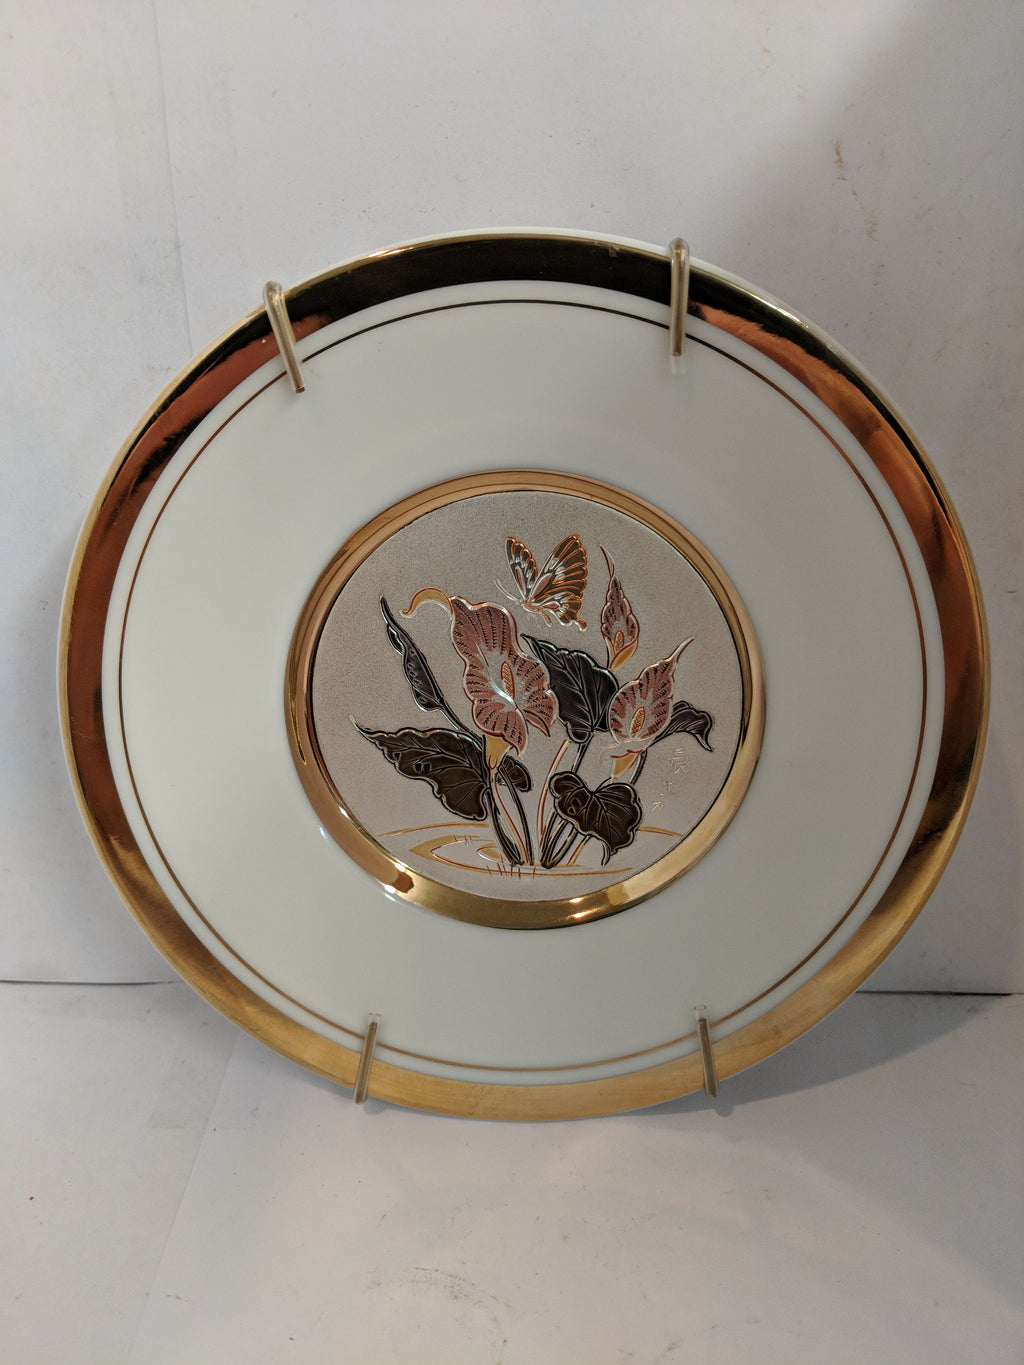 Art of Chokin Plate with 24K Gold Trim